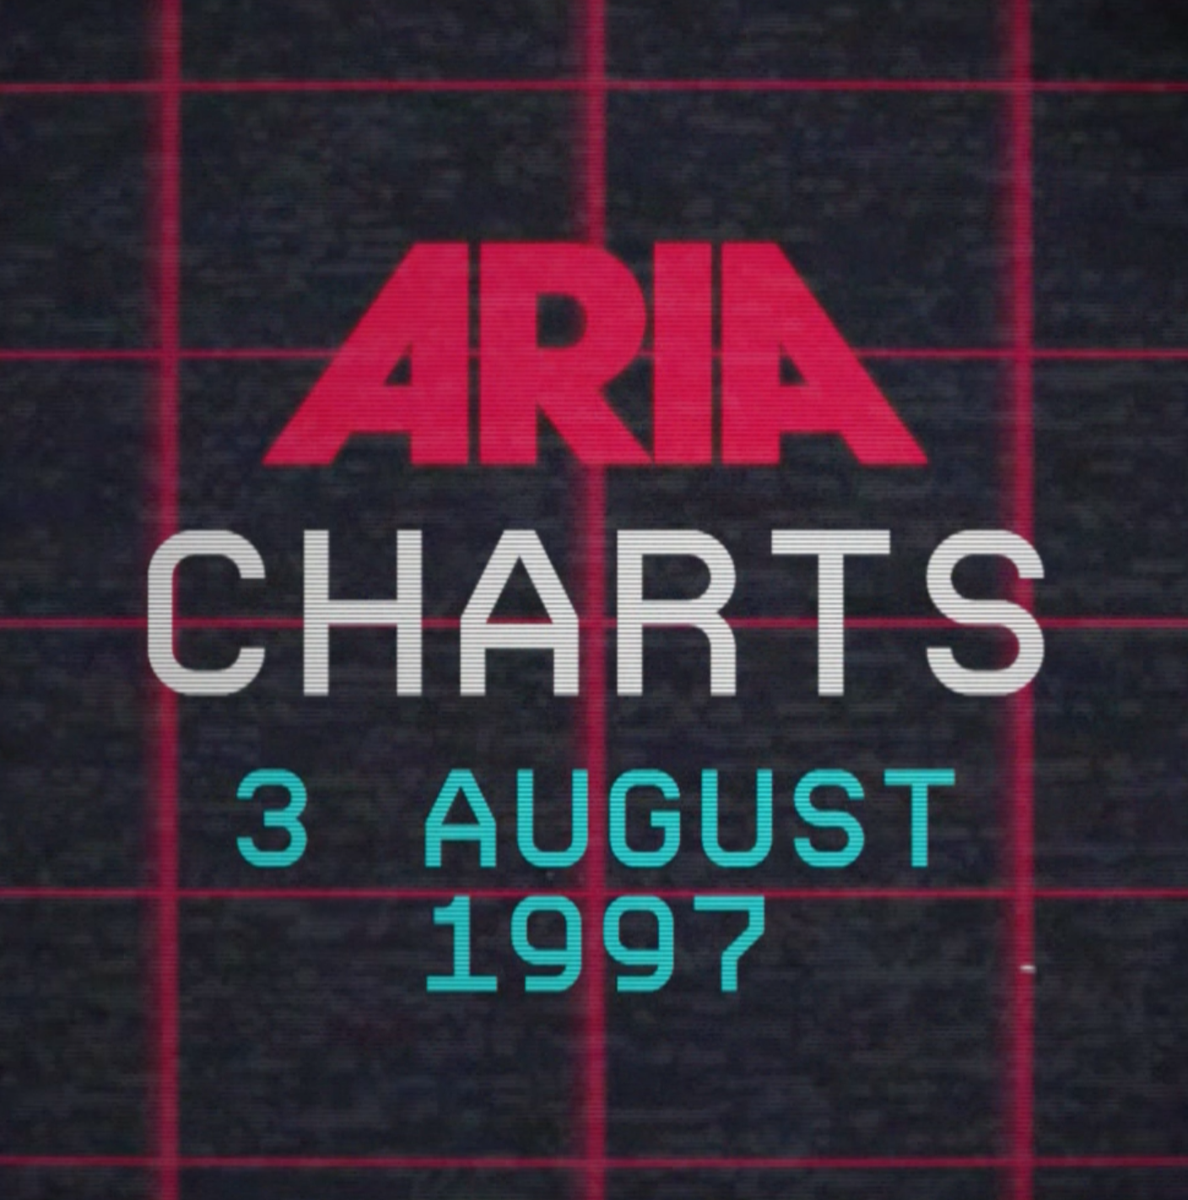 Missing the 90s? Relive the #ARIACharts hits of August 1997 with @Diddy, @hansonmusic, @tinaarena, @jeweljk, @BeeGees and more! https://t.co/eqFXPQPvFB